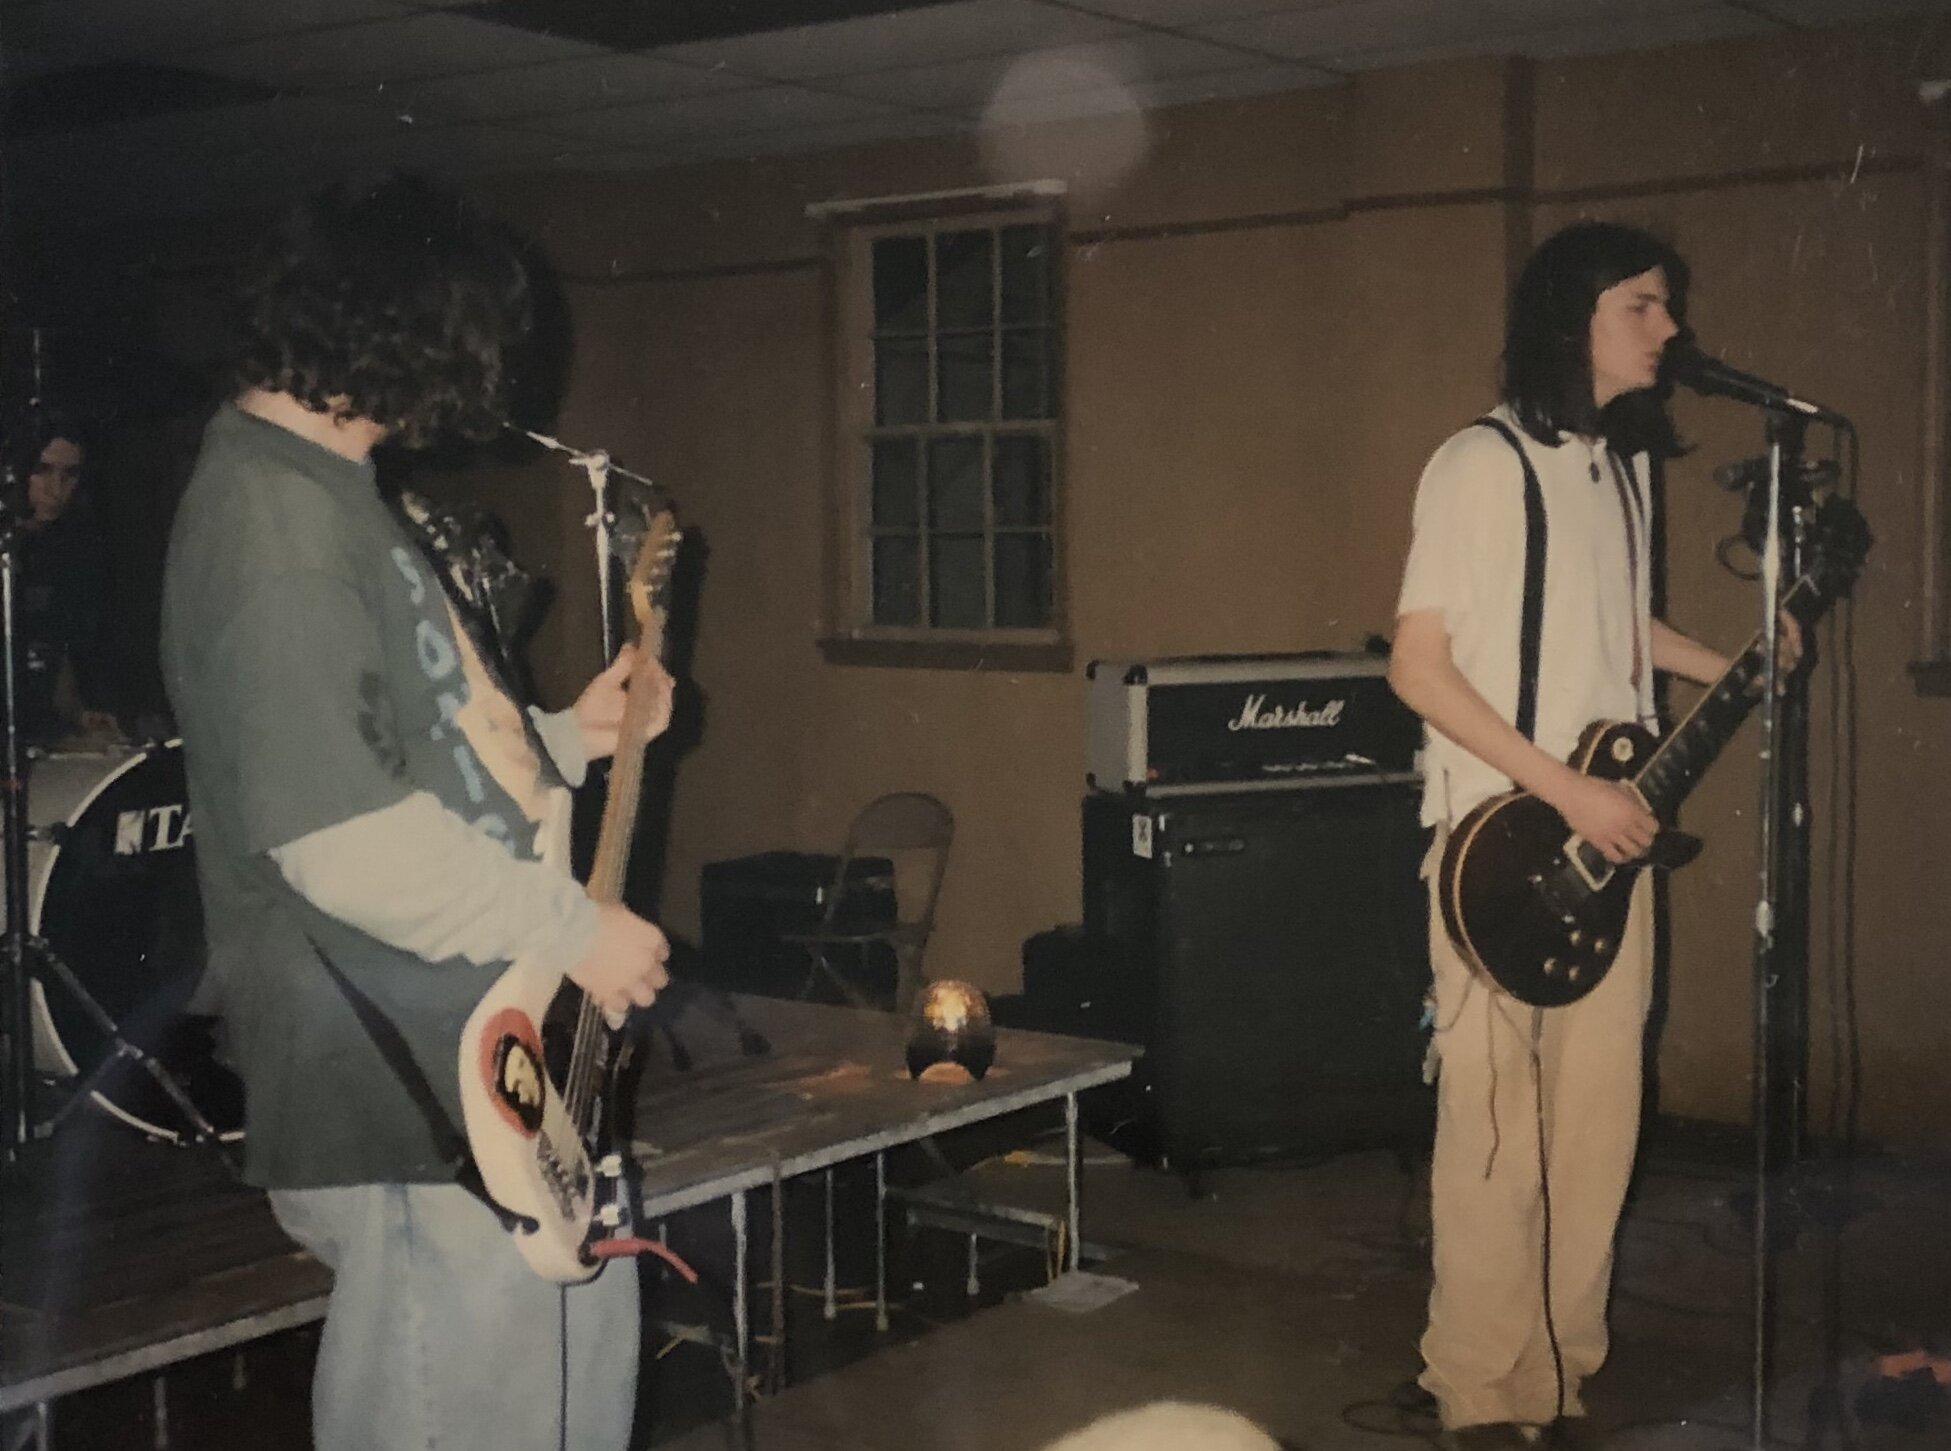 And finally, a deep cut- (left to right) Noah Warner, Ben Sawyer & Seth Avett playing a show w/ their band Margo at the Lions Hut in Mount Pleasant, circa 1995-96. (This one isn't from the archive. Just from Ben's high school photo album.)